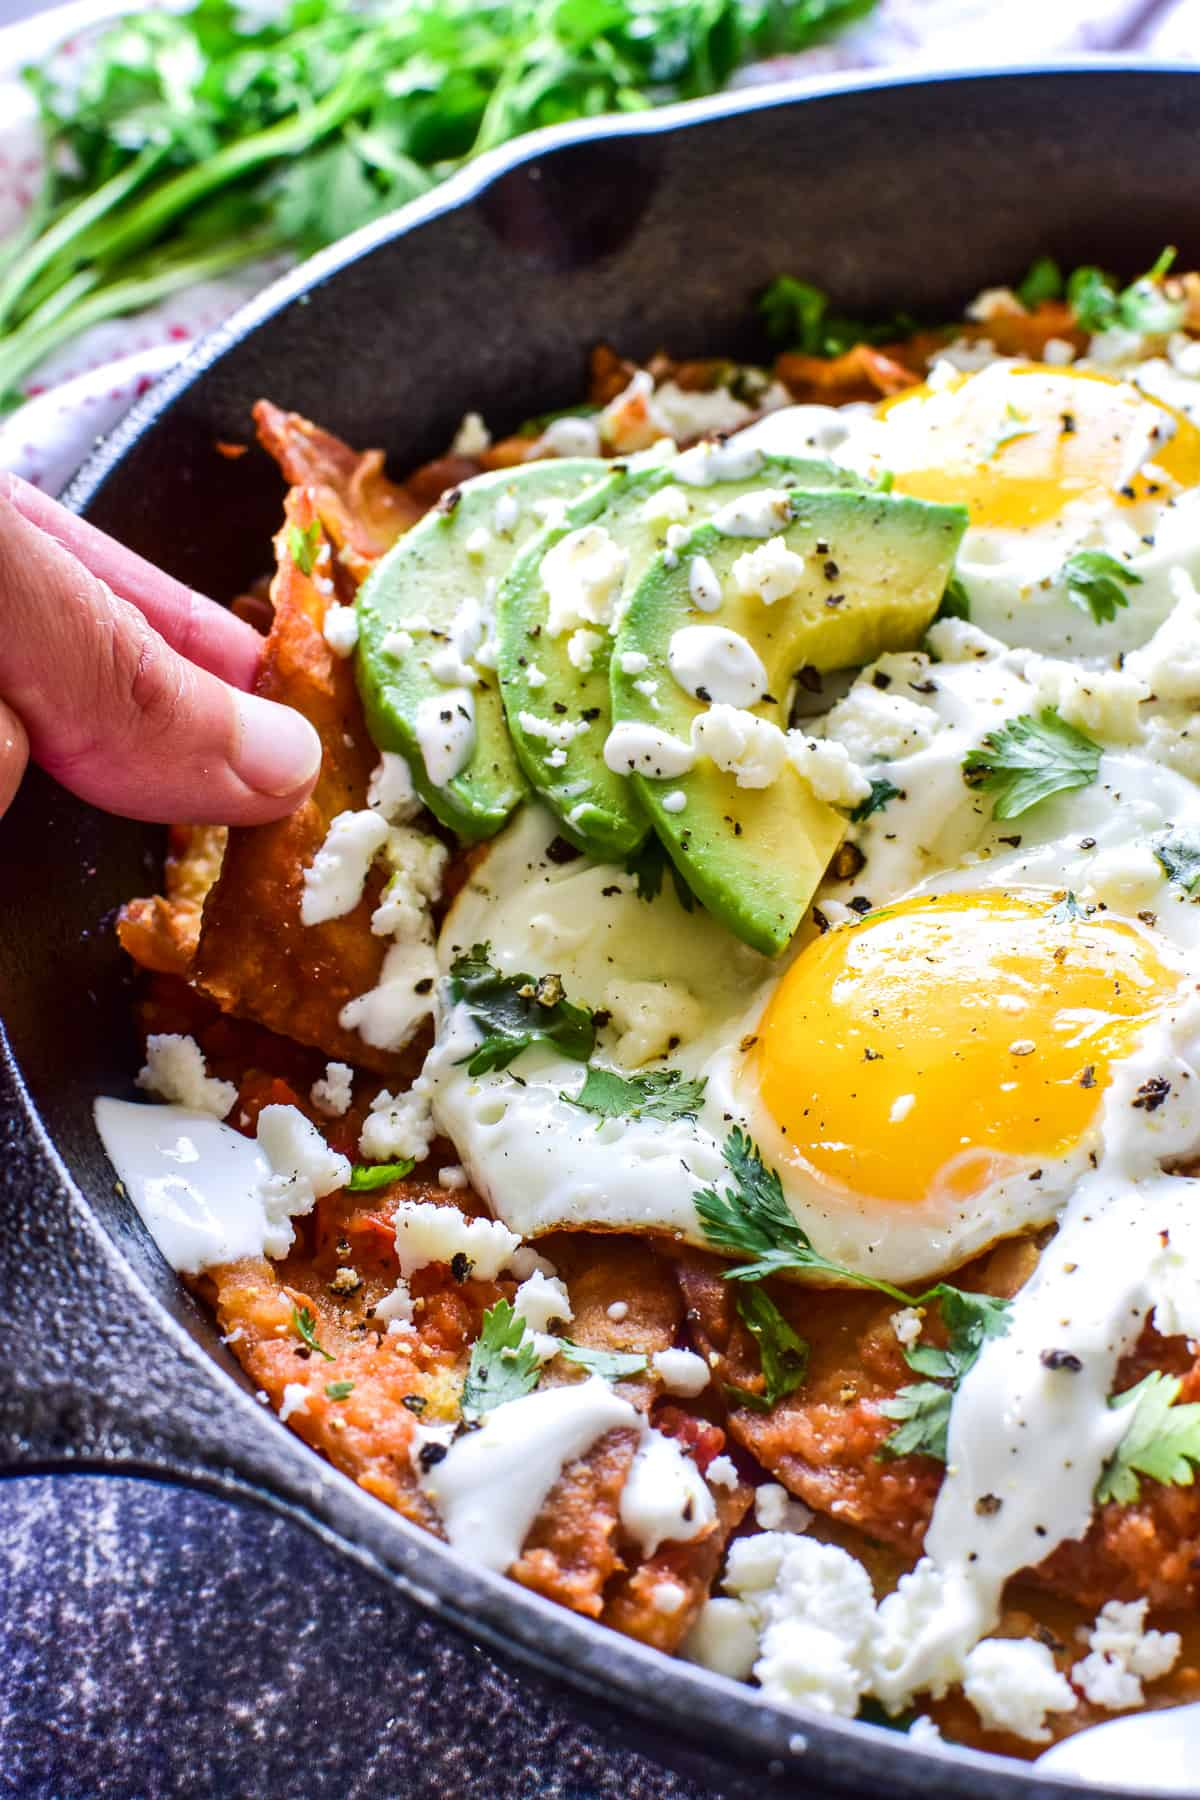 Photo of fingers grabbing chilaquiles